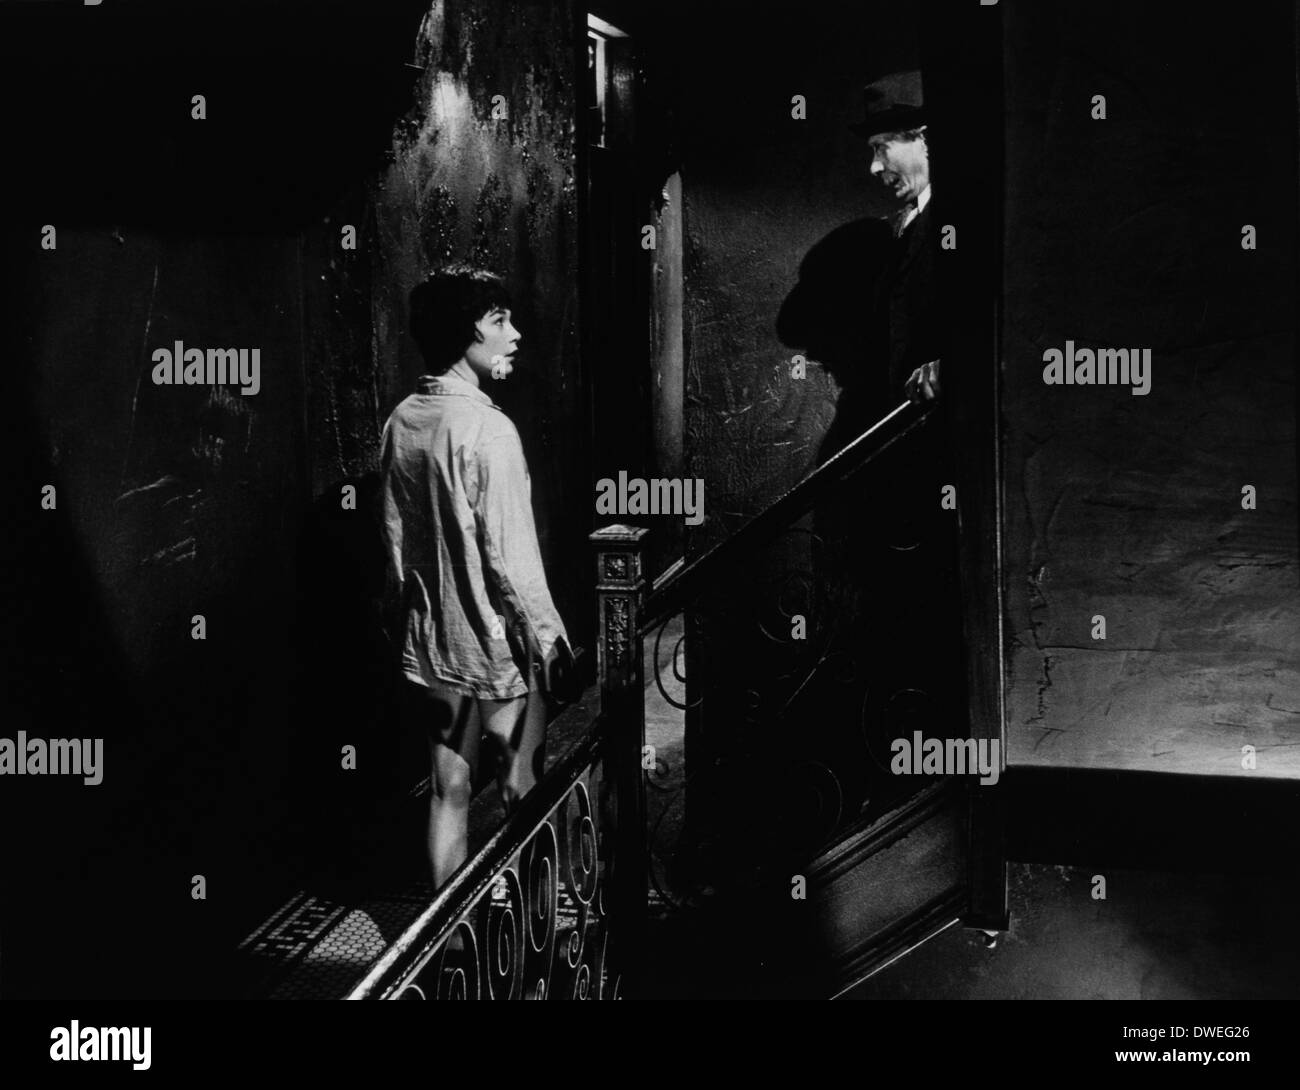 Shirley MacLaine, on-set of the Film, 'The Apartment', 1960 - Stock Image